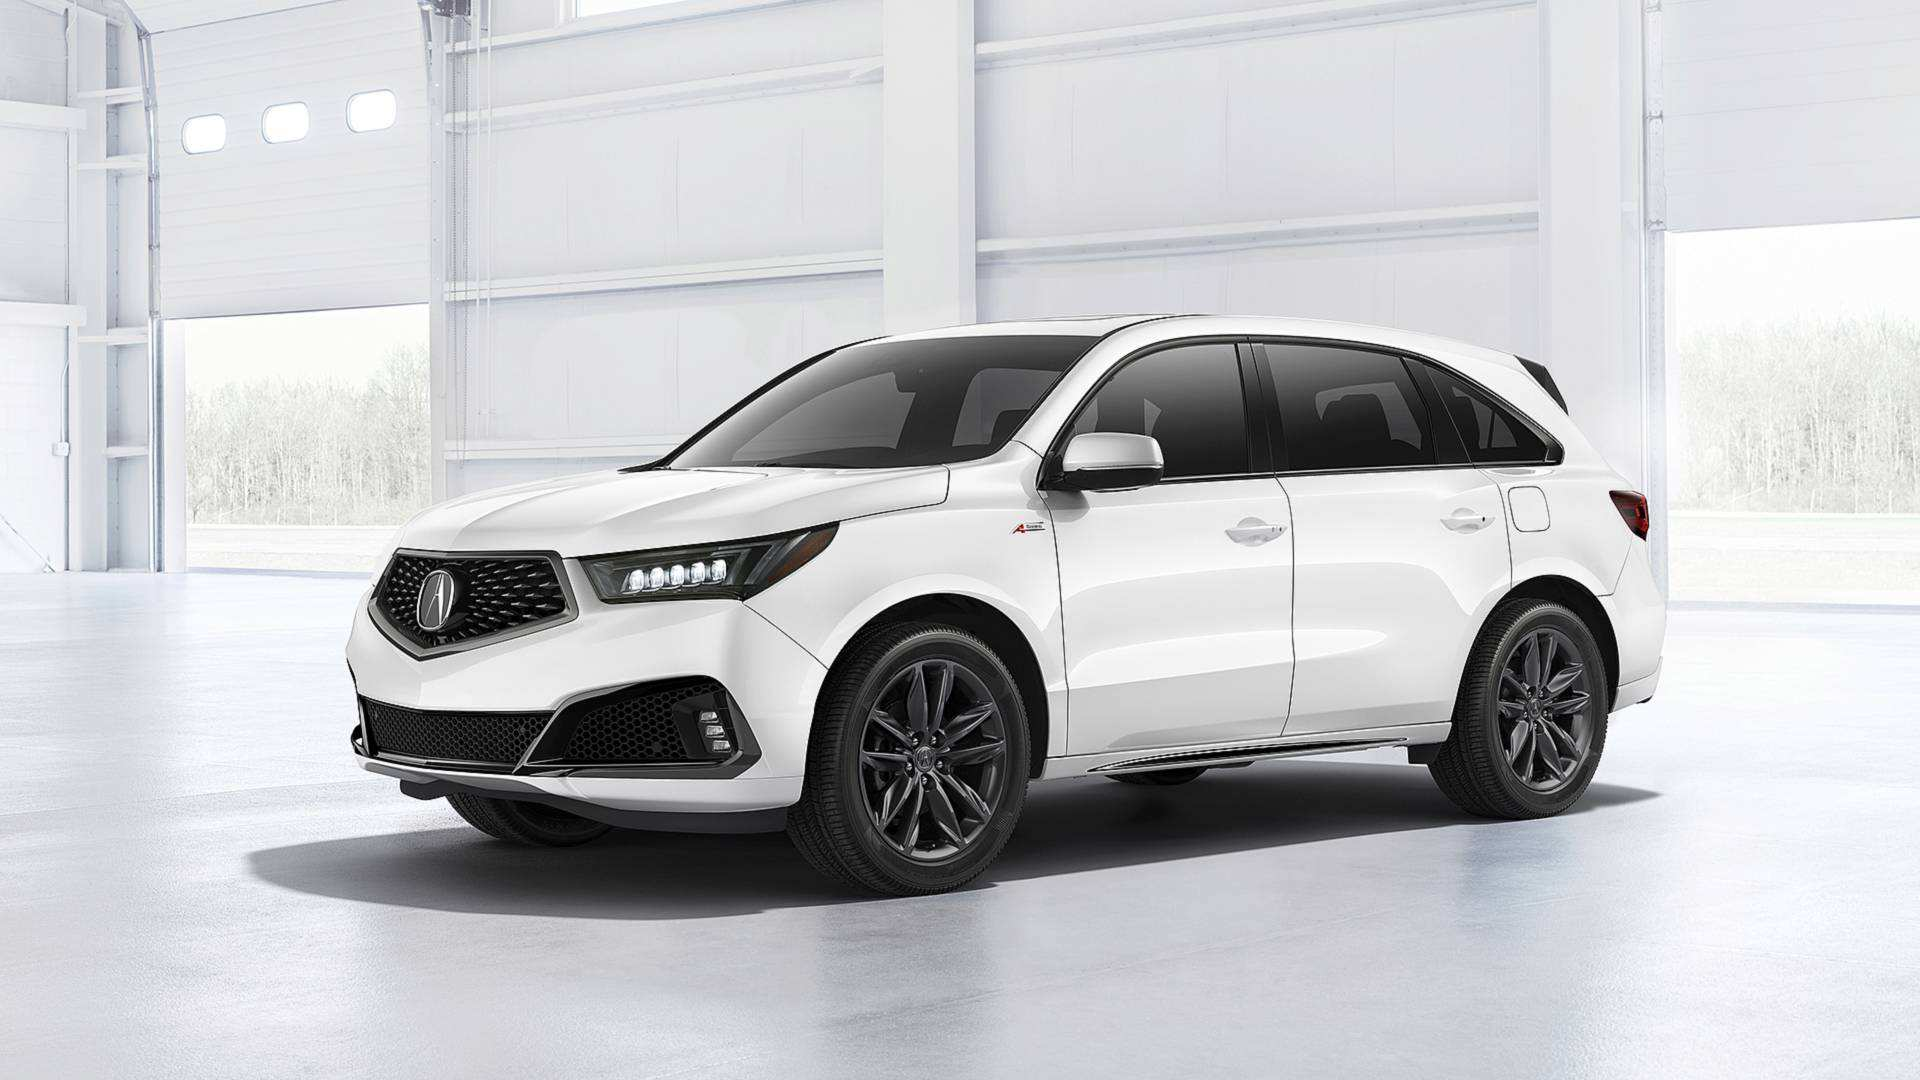 23 Concept of New Acura Rdx 2019 Exterior Colors Spy Shoot Ratings for New Acura Rdx 2019 Exterior Colors Spy Shoot